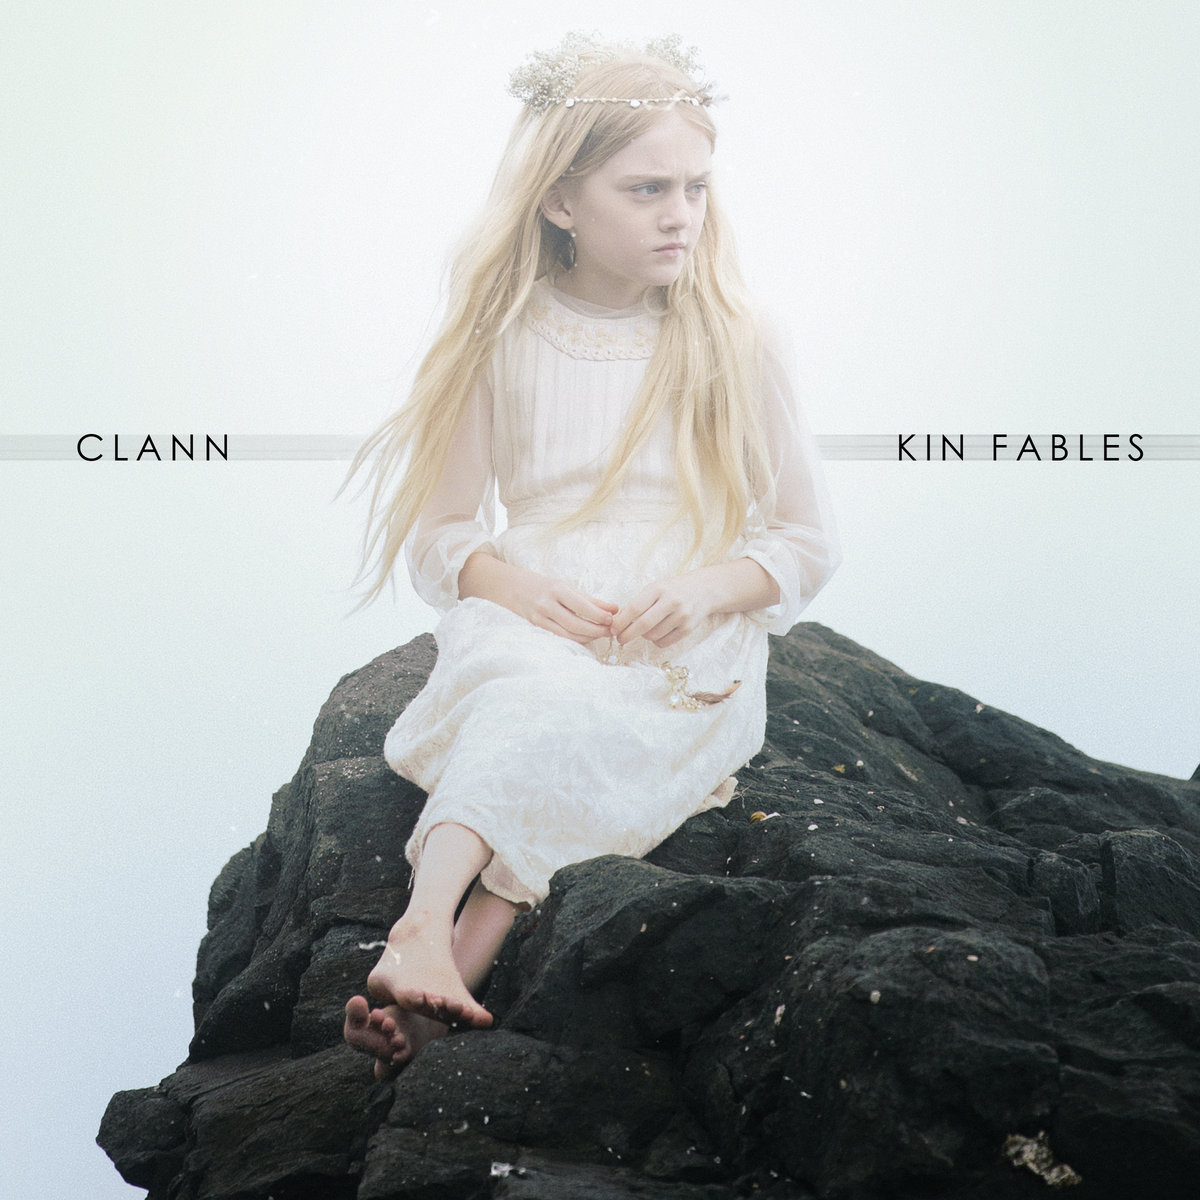 Album: KIN Fables  Artist: CLANN  Independent release